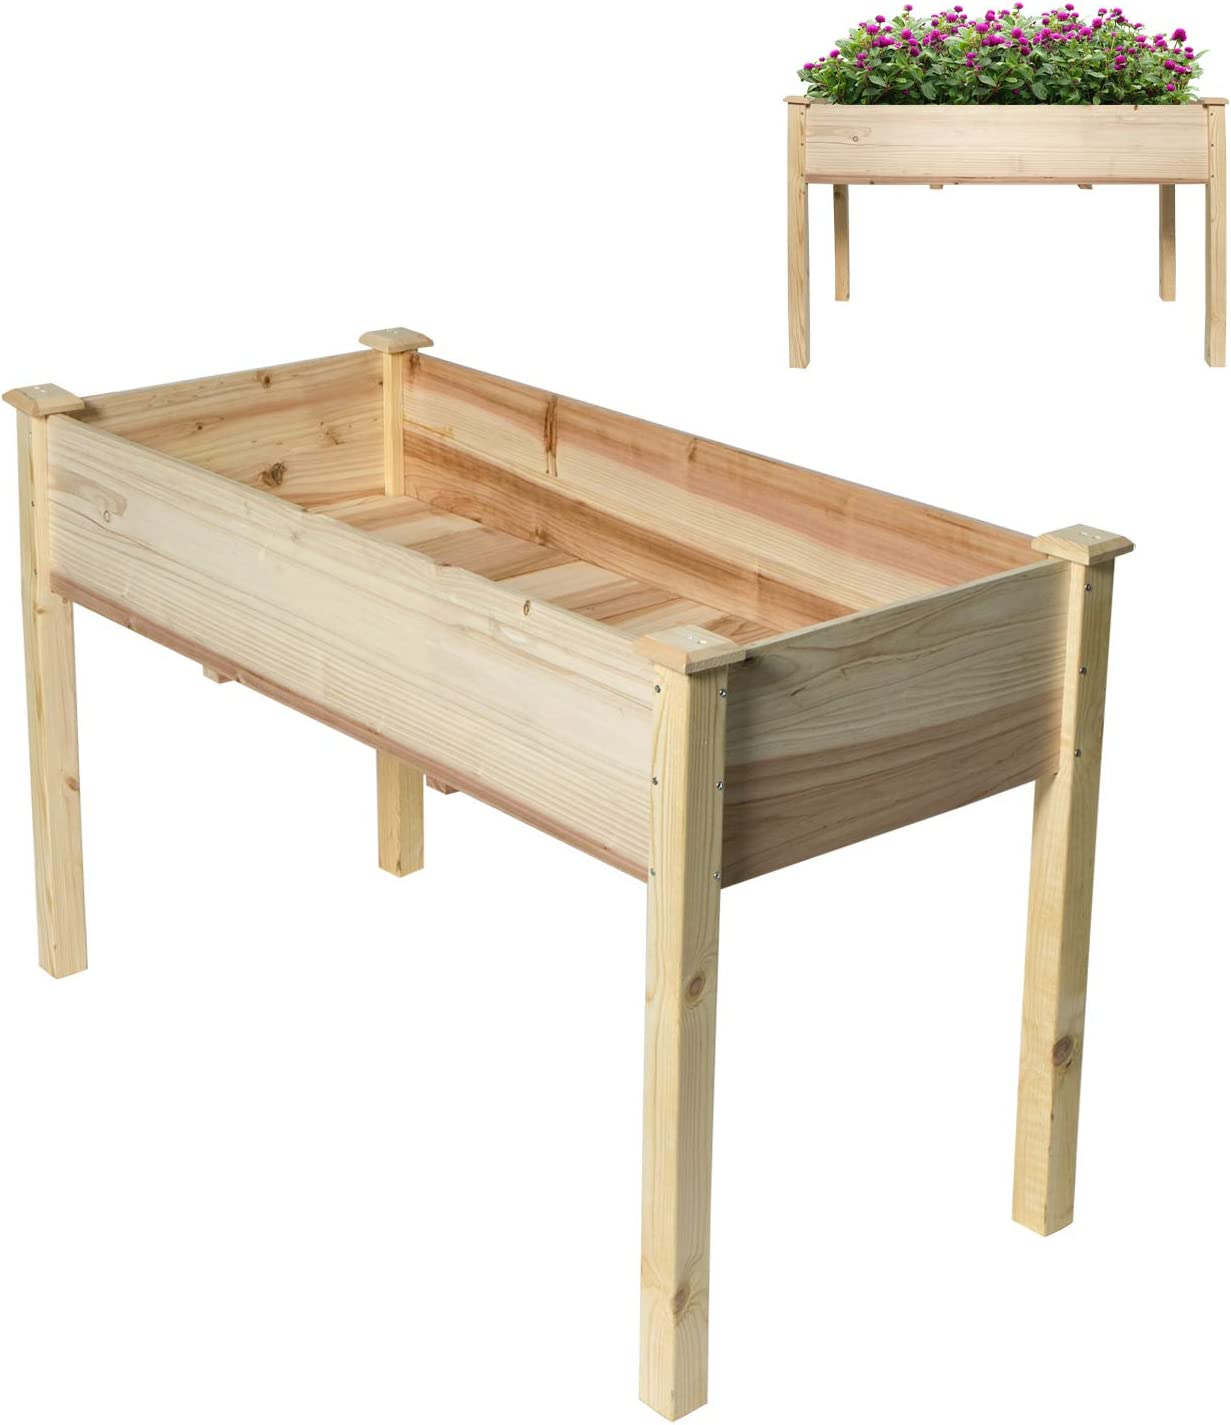 Homewell Raised Garden Bed with Legs Elevated Wood Planter Box Stand for Backyard, Patio - Natural Pine (48 x 23 x 30)